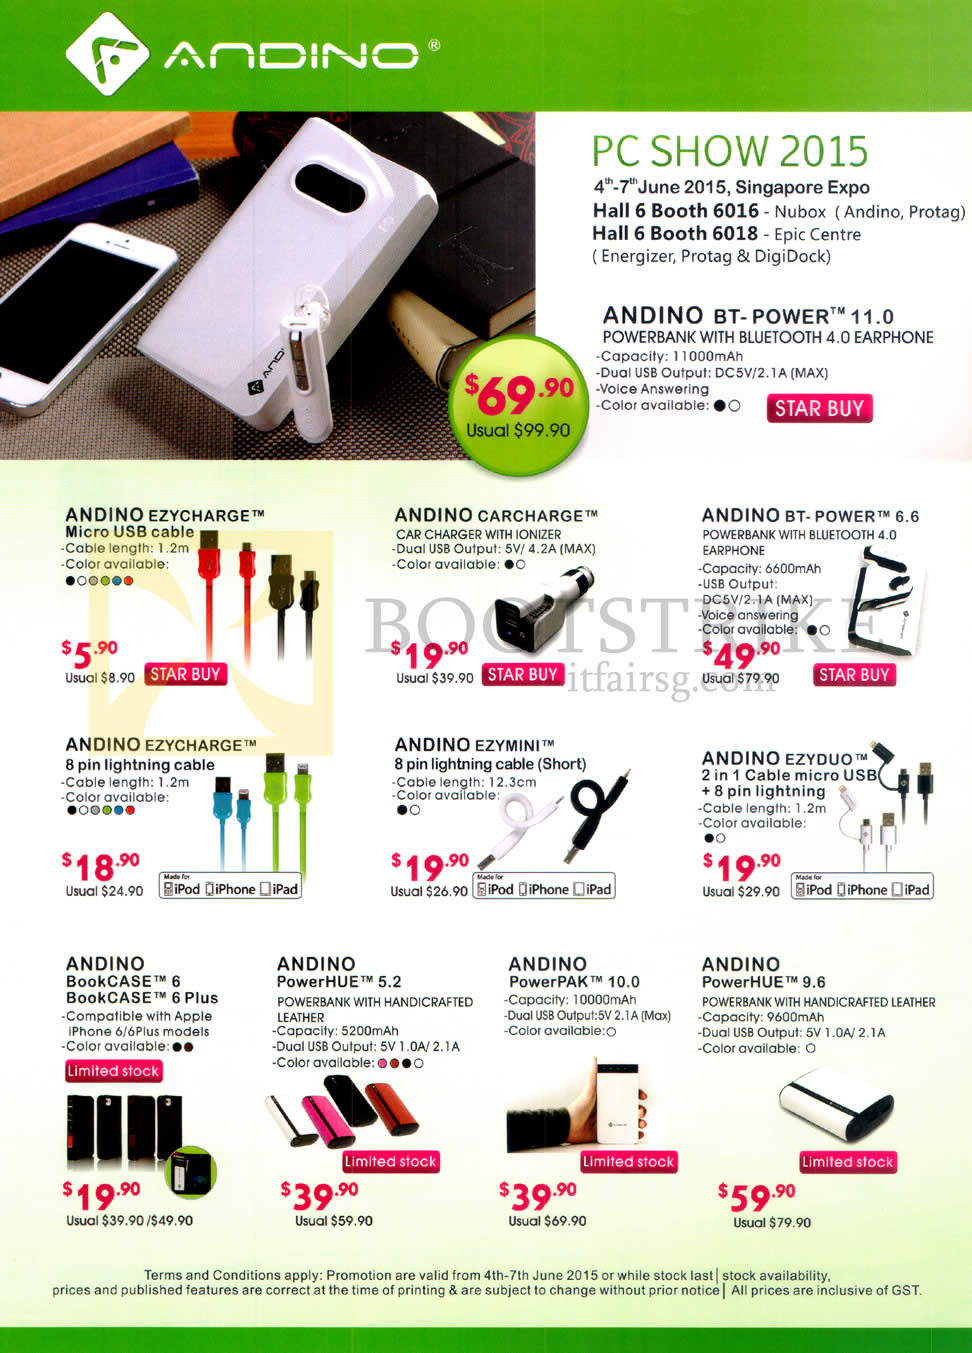 PC SHOW 2015 price list image brochure of Andino Cables, Bluetooth Earphone, Bookcase, Powerbank, Cable Micro USB